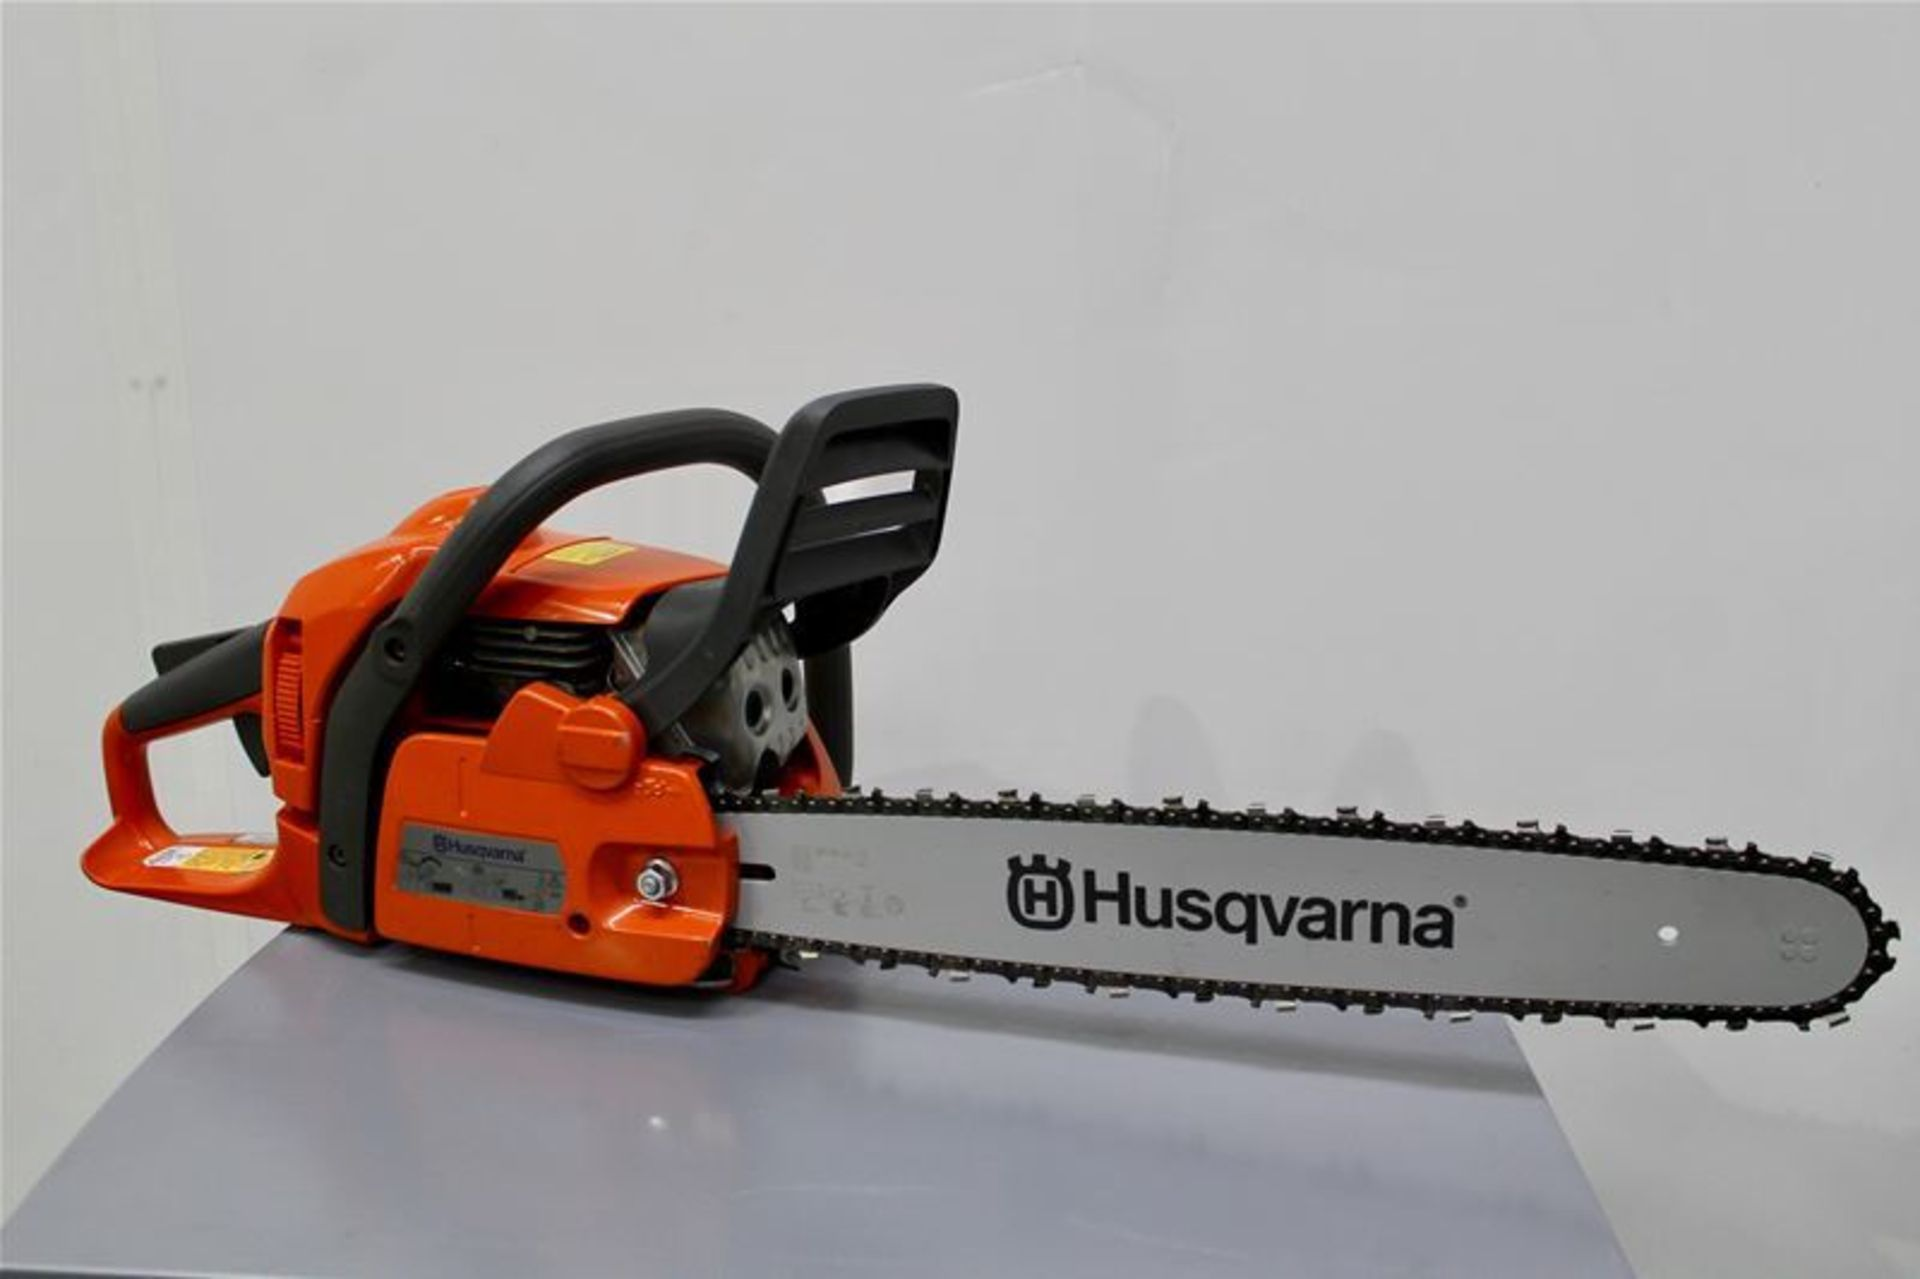 Lot 29 - Husqvarna Petrol Chainsaw 40.9cc 18in Bar